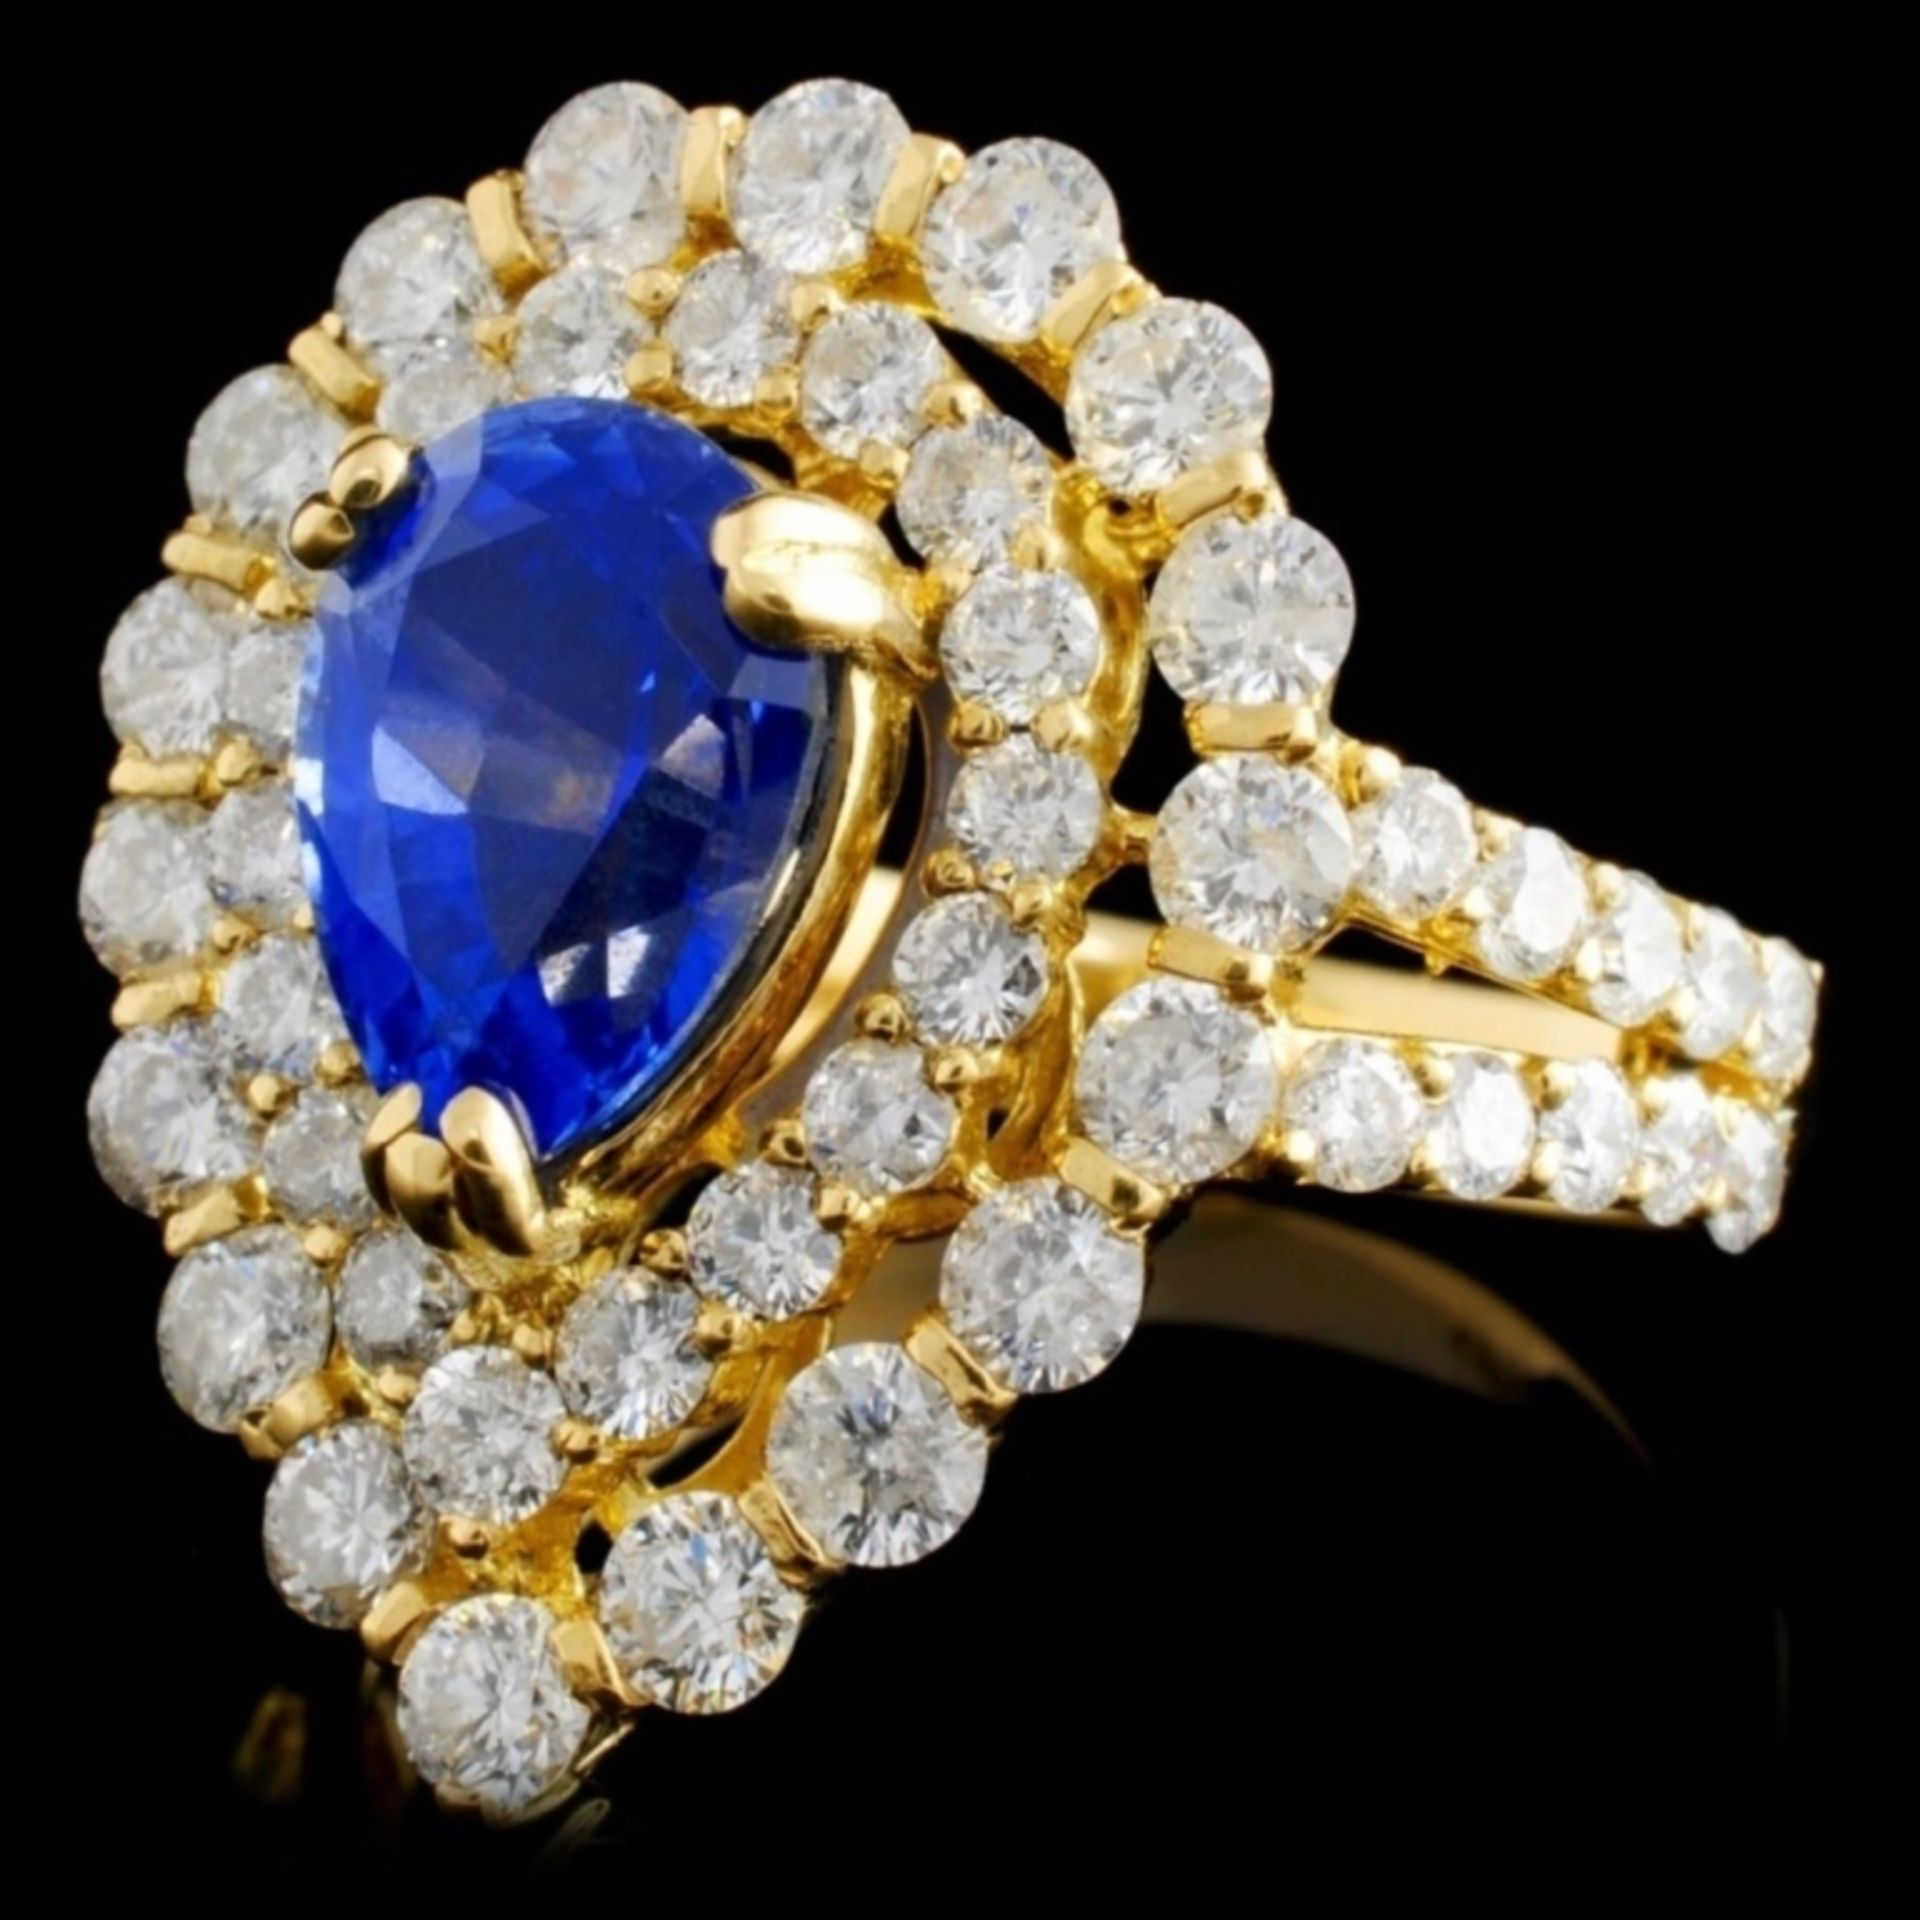 18K Y Gold 2.18ct Sapphire & 1.91ct Diamond Ring - Image 2 of 4